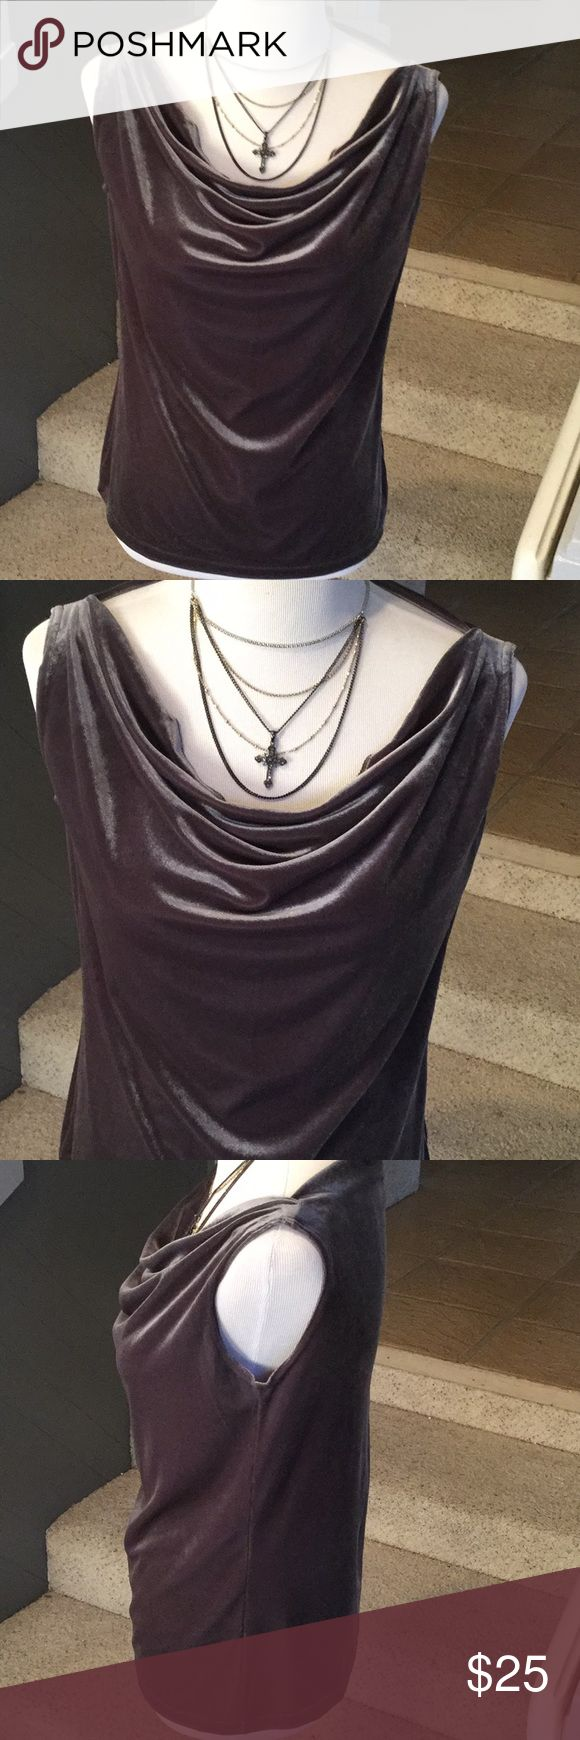 """Made in Heaven Gray Stretch Velvet Sleevless Top Made in Heaven gray or silver sleevless stretch velvet blouse top, size M, in great shape.  Approx. 22"""" long,  39"""" chest.  Happy to answer questions, thanks!❤️ Made in Heaven Tops Blouses"""